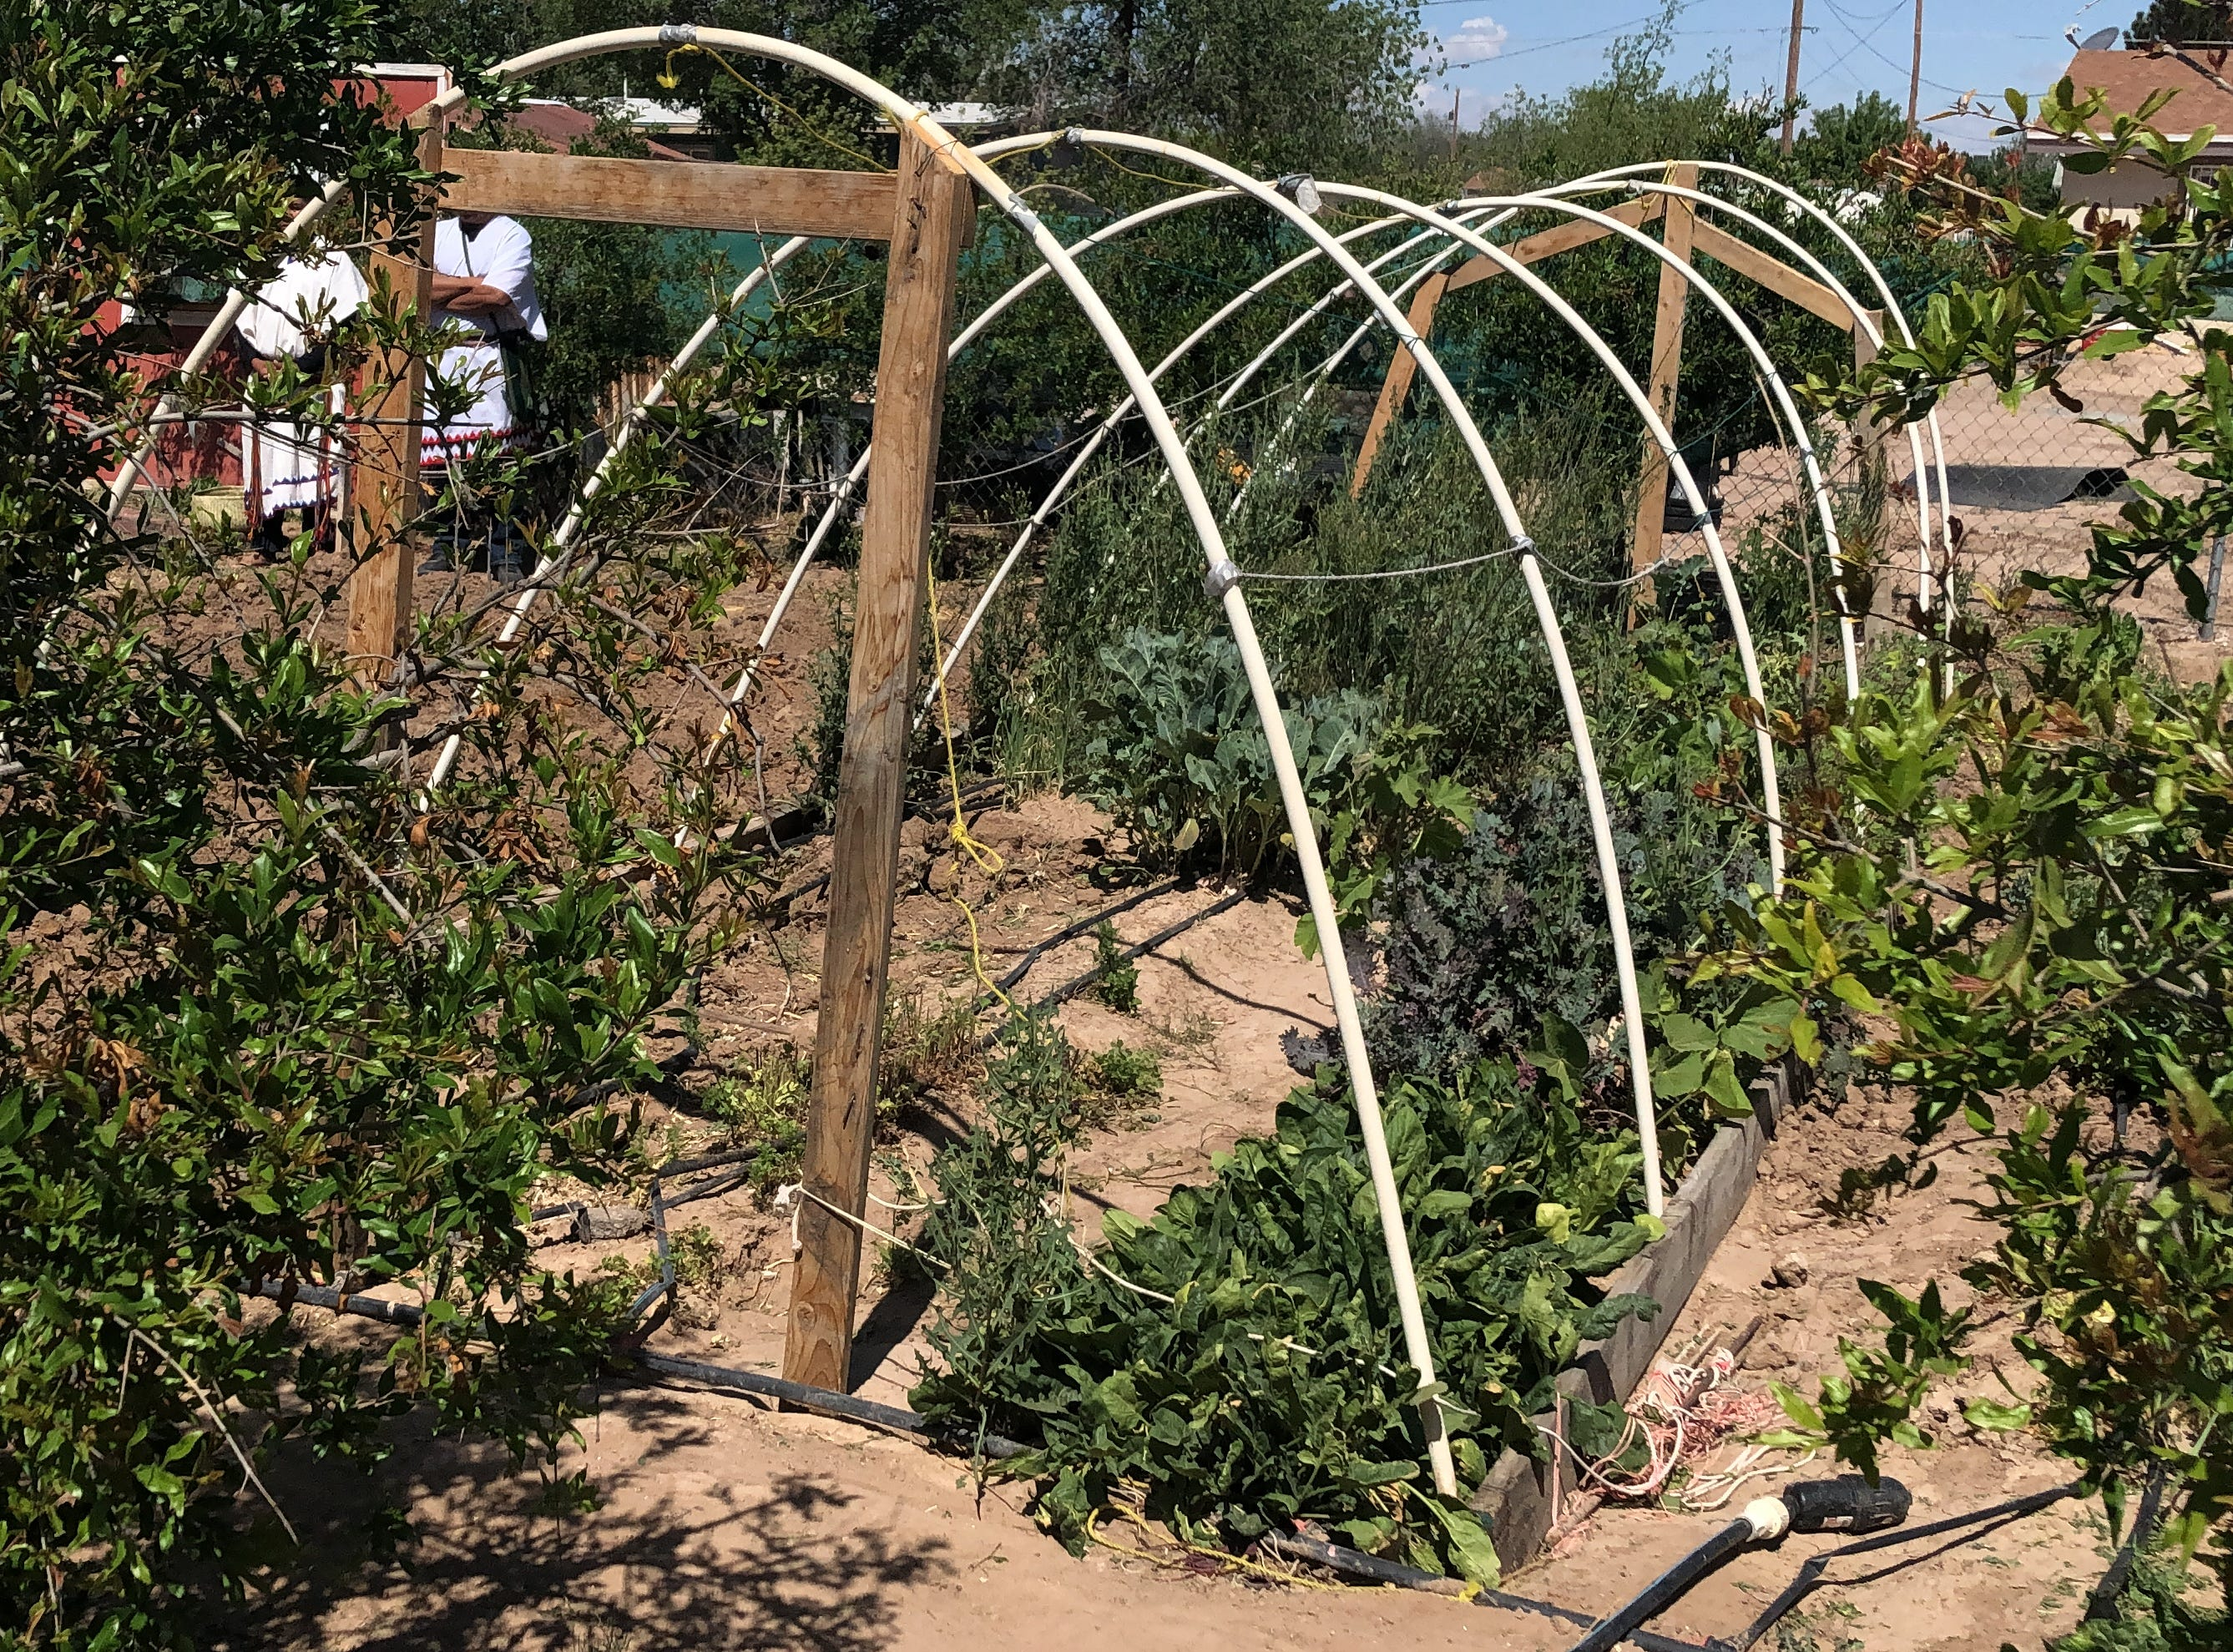 People learned about planting and appreciating natural resources as community members in San Elizario celebrated the start of the growing season at a gathering Saturday, April 13, 2019, at Ayuda Inc.